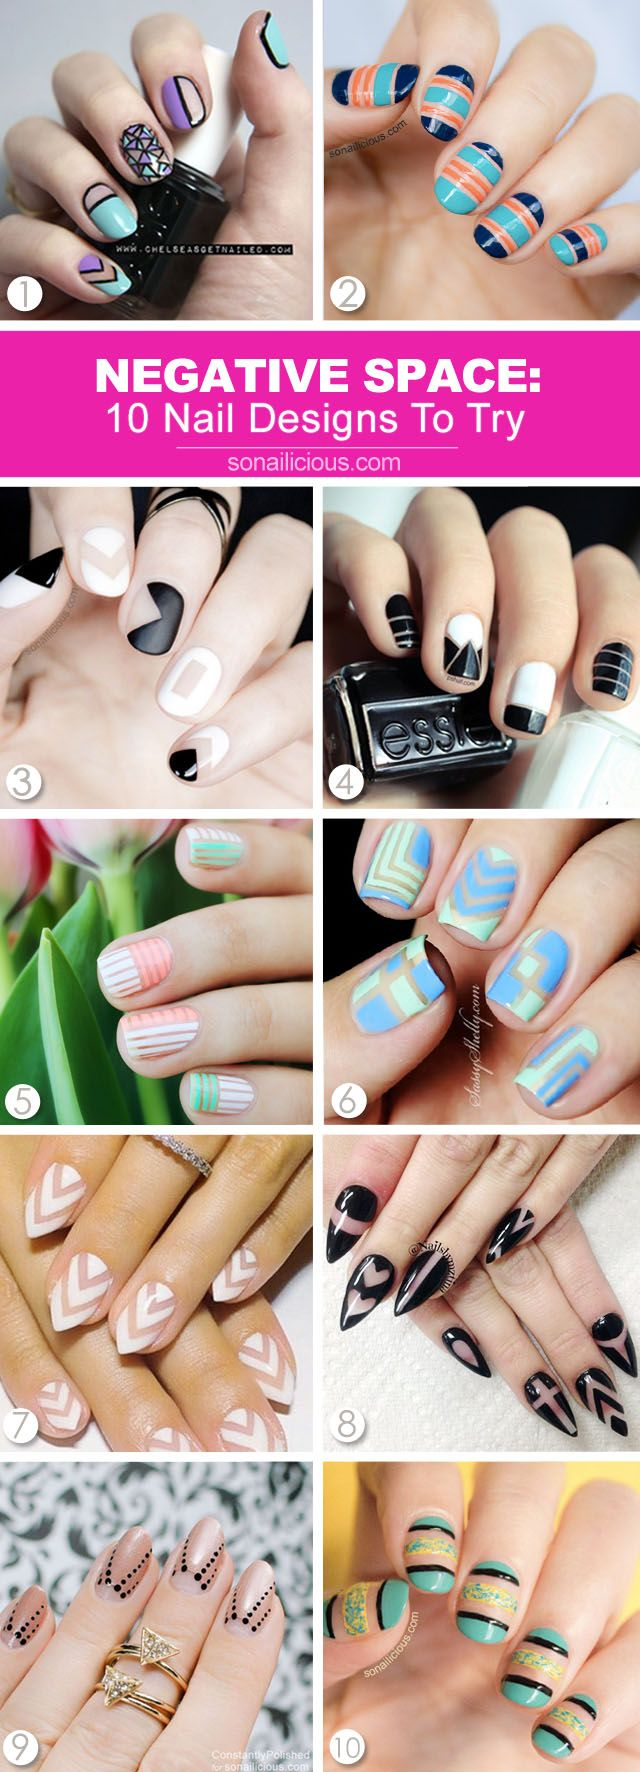 The best 10 negative space nails to try, with how-to s: http://sonailicious.com/10-best-negative-space-nail-designs/